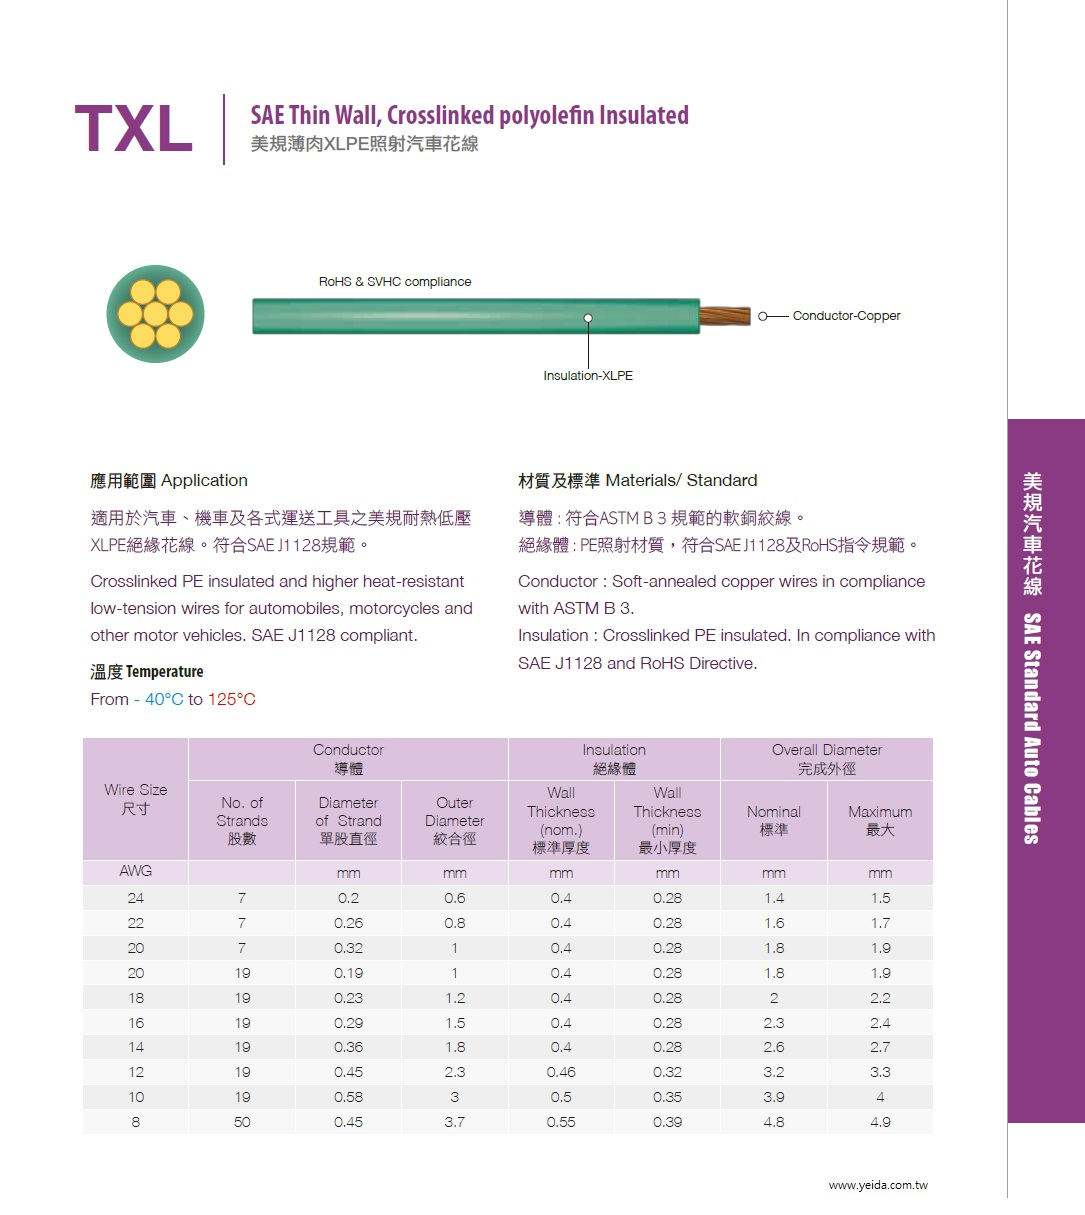 TXL SAE J1128 Thin Wall, Crosslinked polyolefin Insulated 美規薄肉XLPE照射汽車花線產品圖